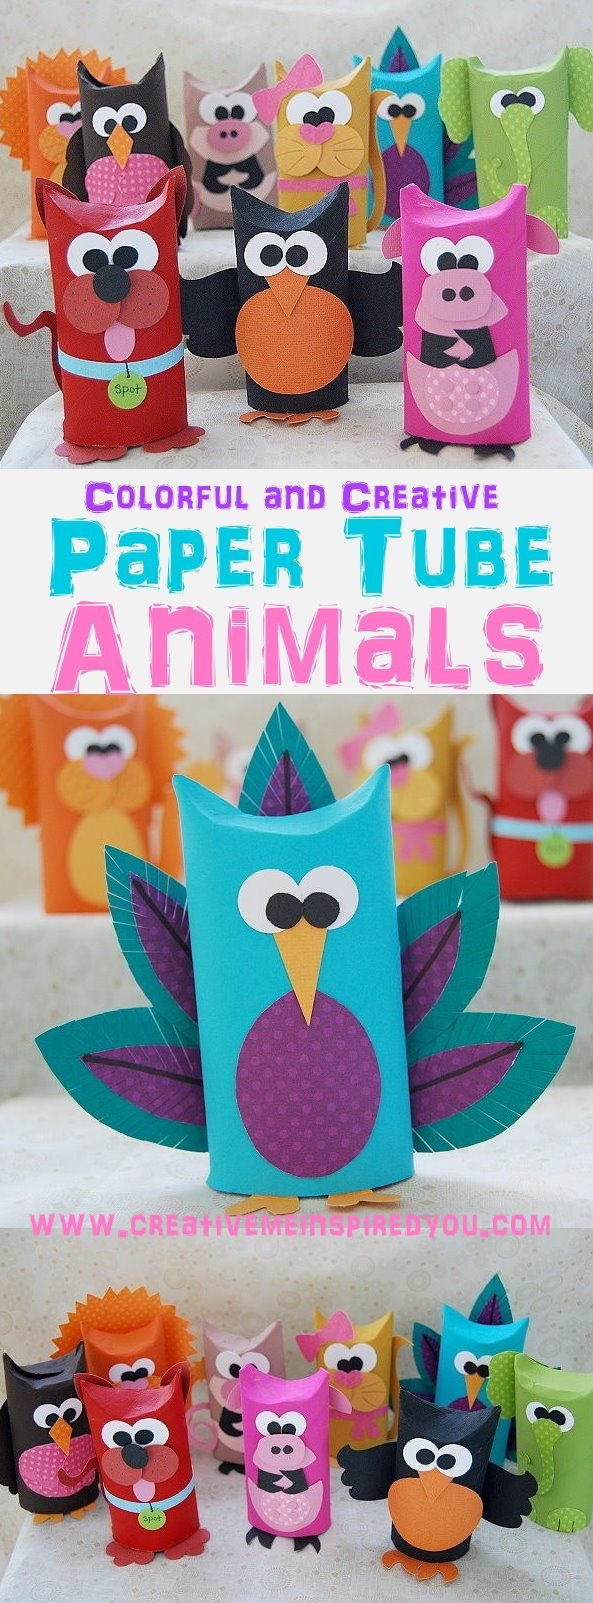 Toilet roll animals - recycled crafts